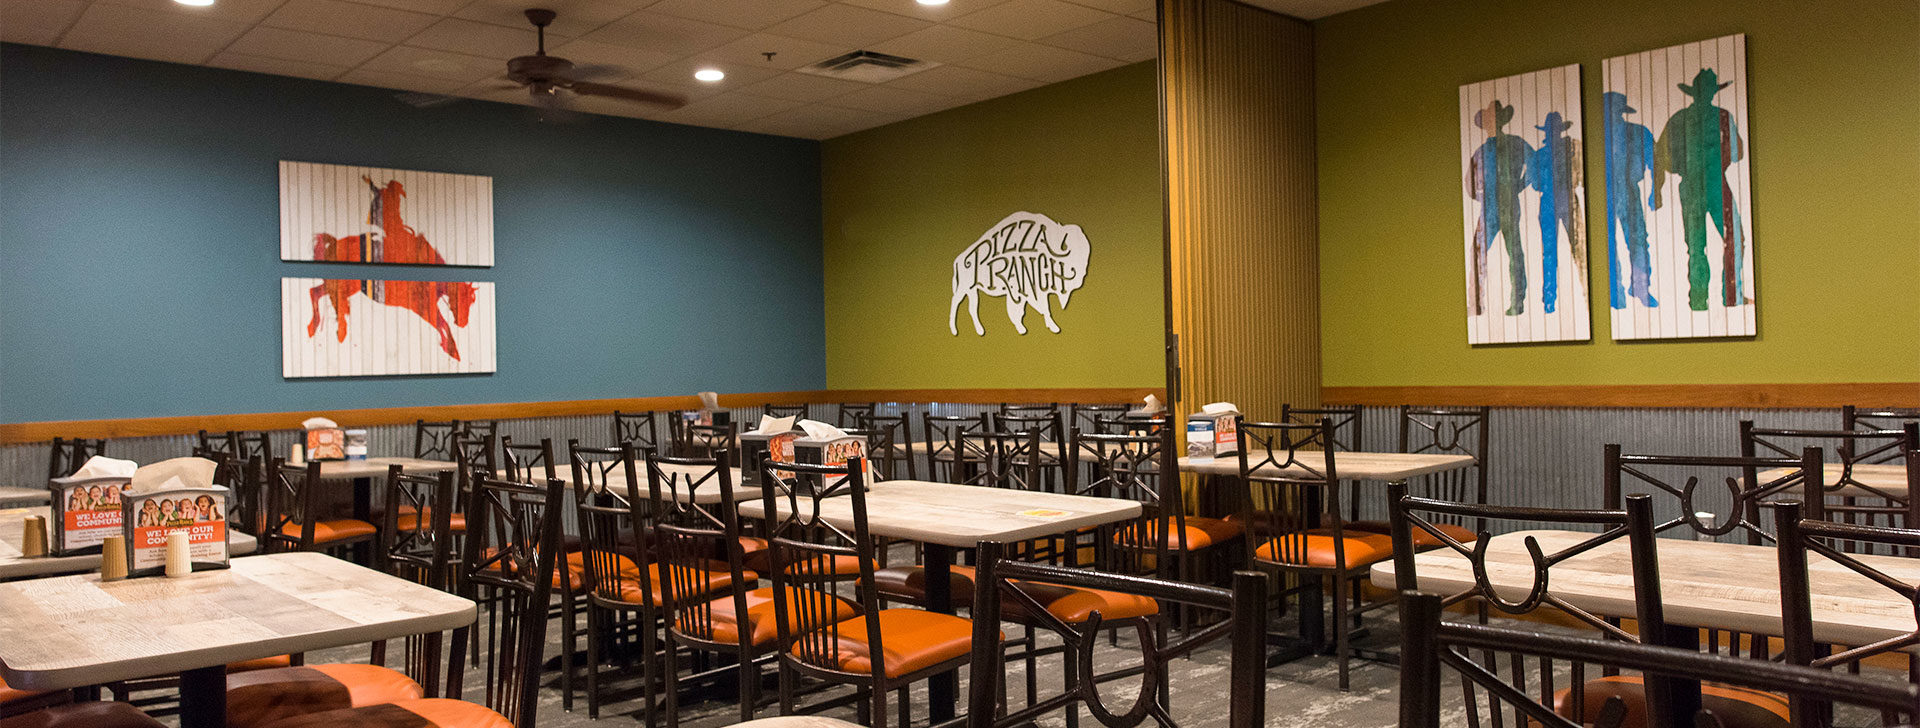 Pizza Ranch Community Rooms